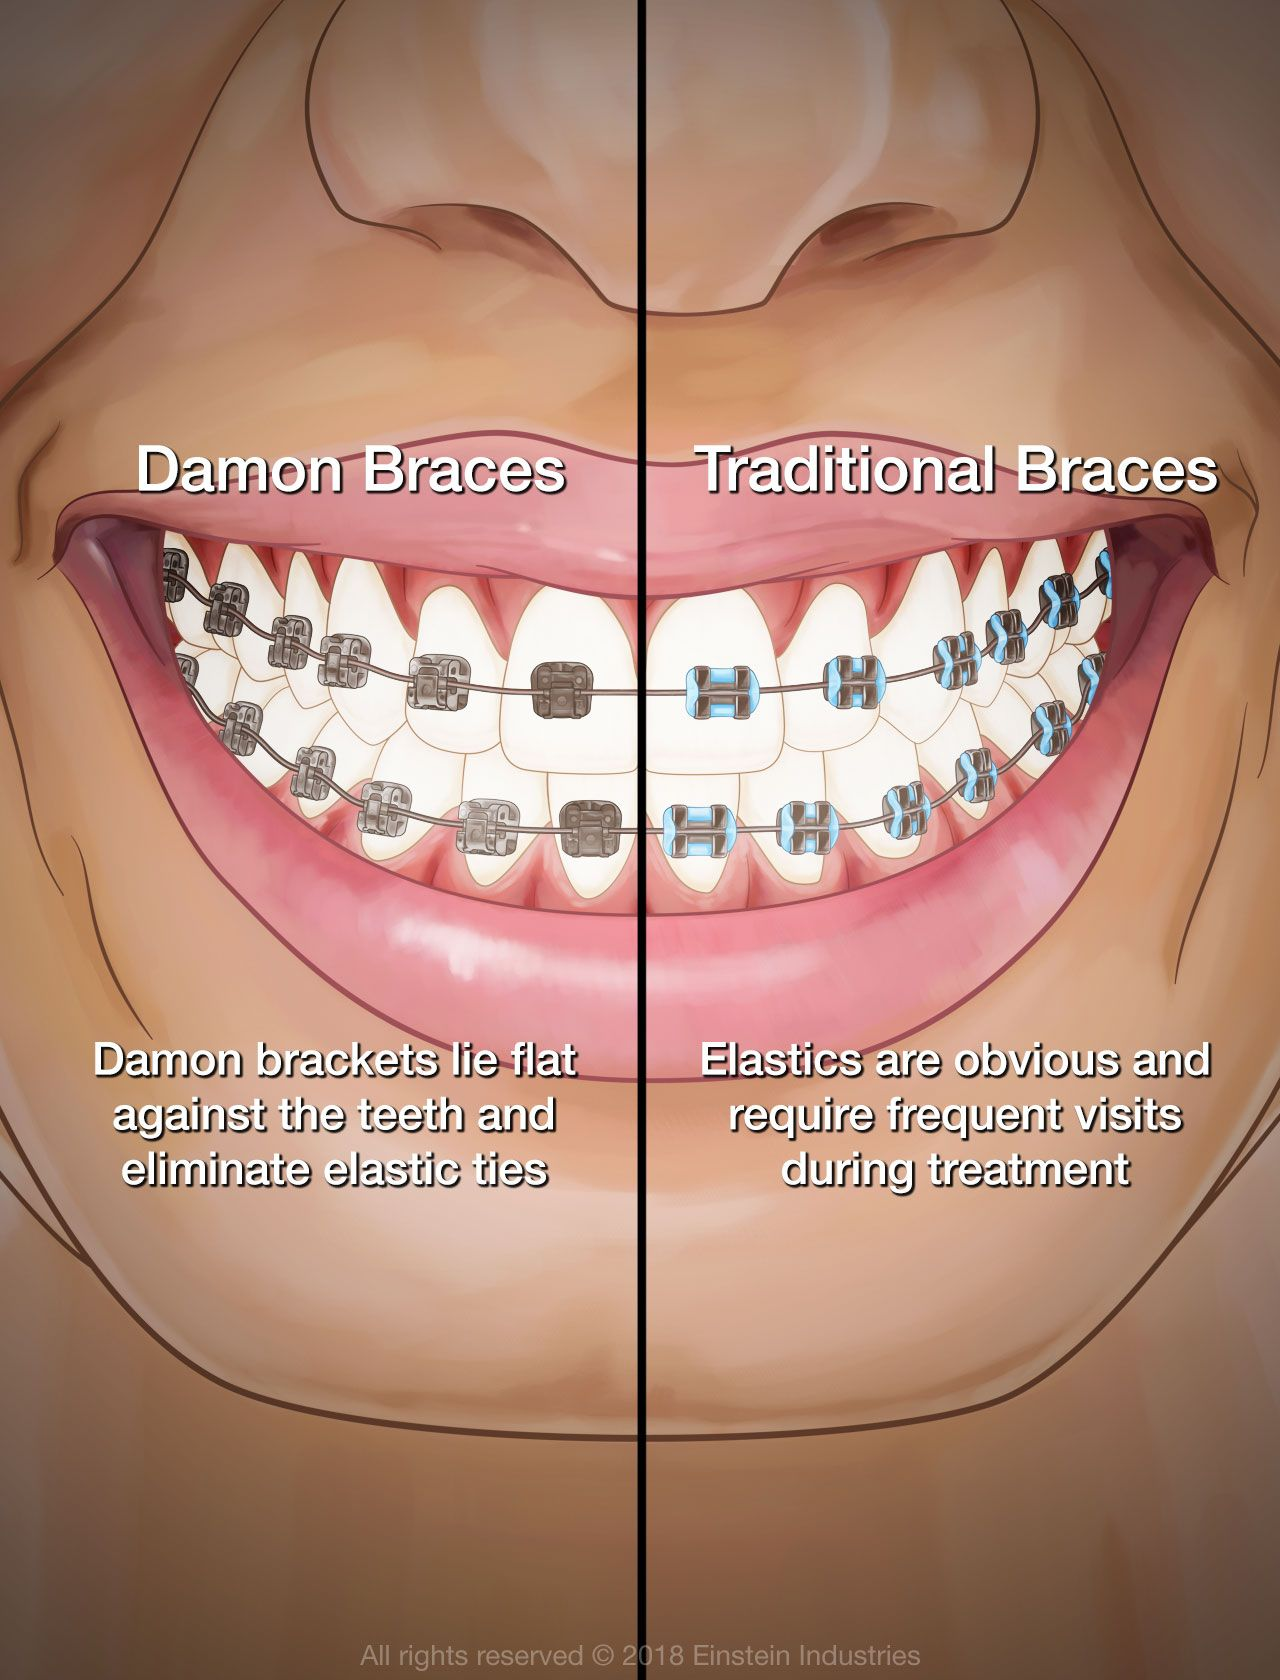 Comparison of traditional and Damon braces